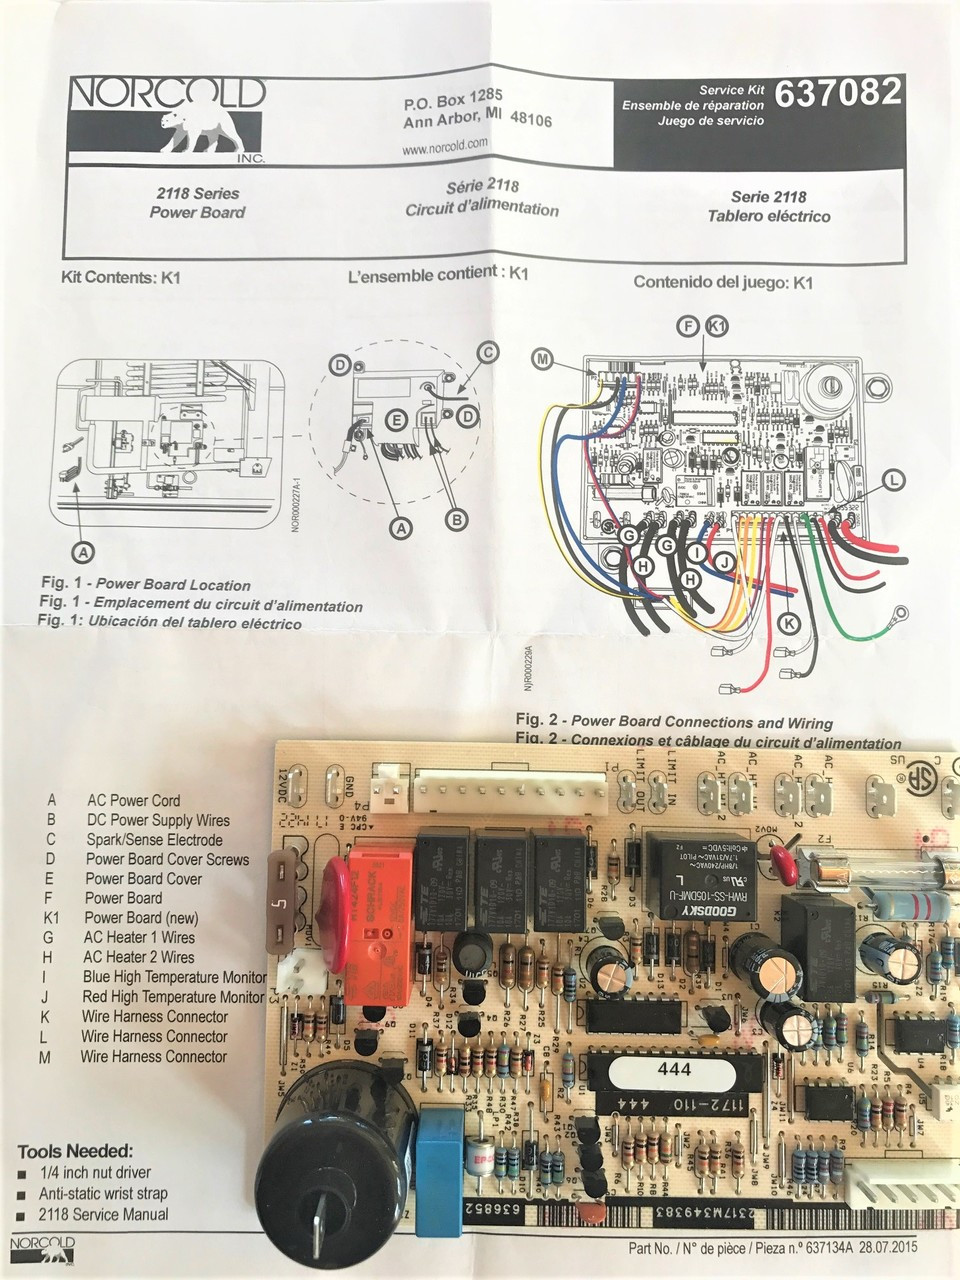 IMG_0059_2__66296.1504279223.1280.1280?c=2 norcold model n621 rv refrigerator wiring diagram norcold 1200 norcold power board wiring diagram at fashall.co